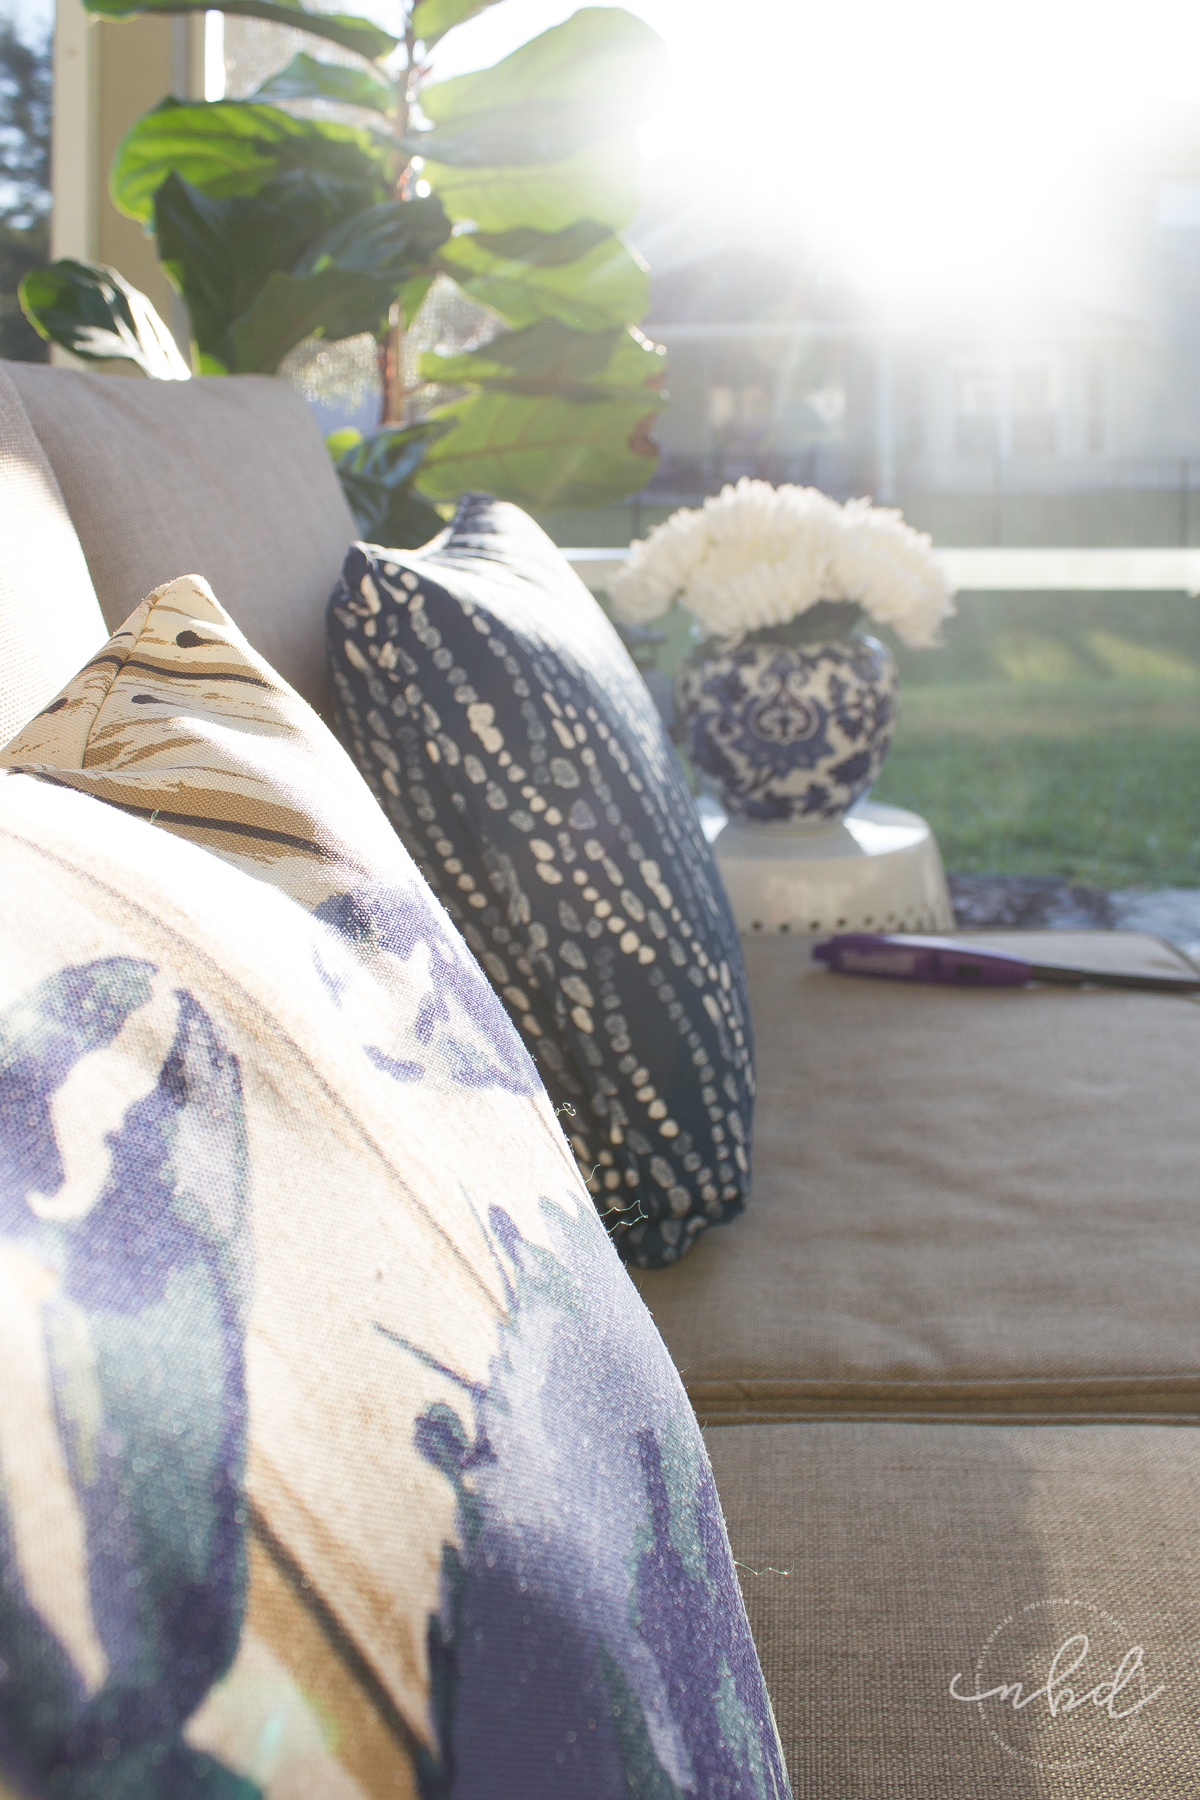 Lowe's #MyOutdoorOasis pillows and sunshine - La La Lisette